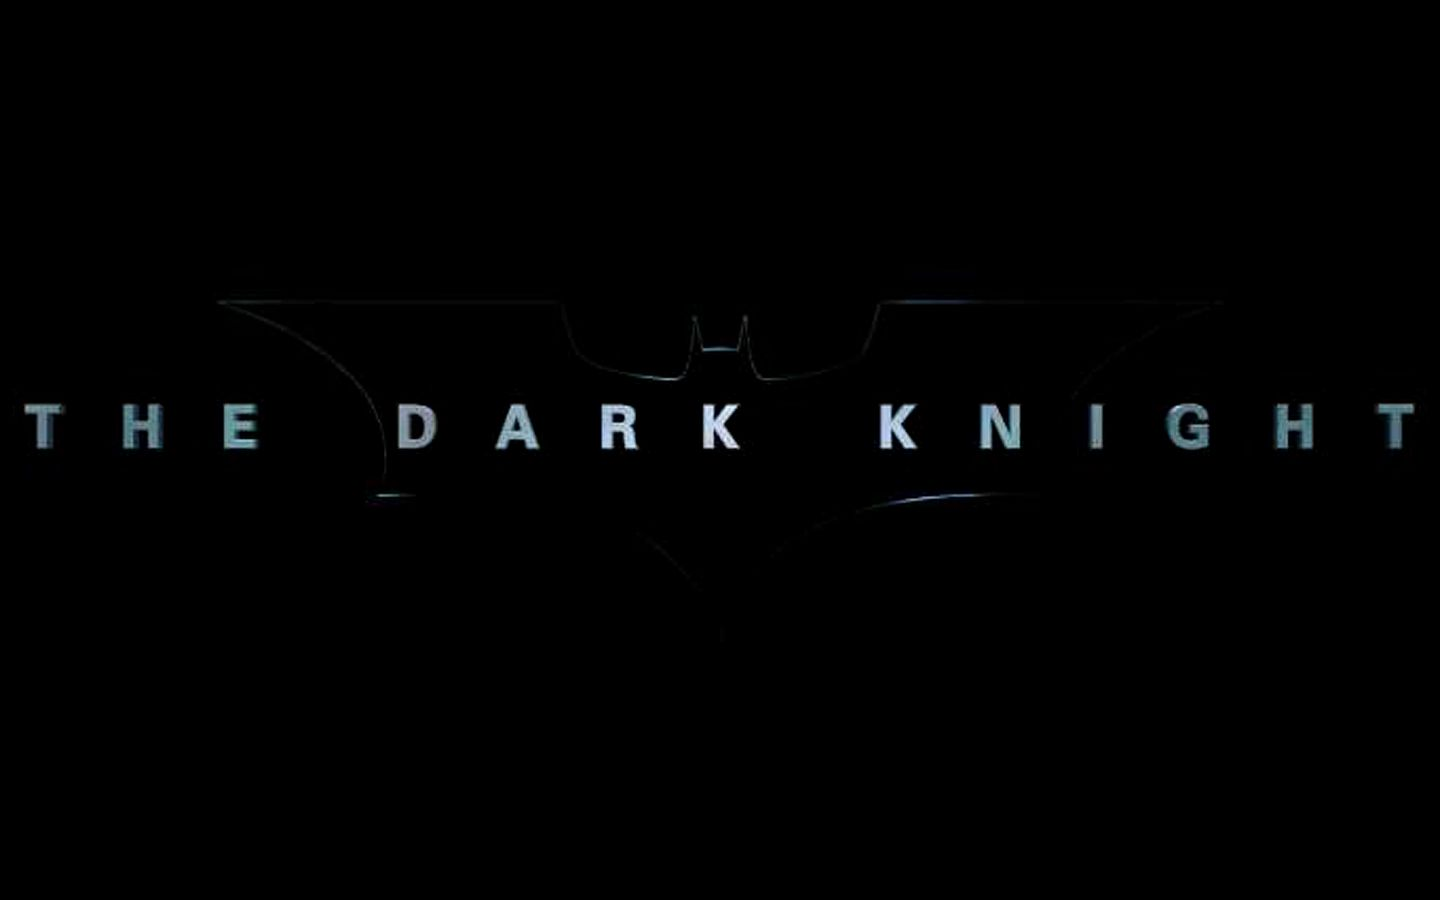 The Dark Knight Title Poster Wallpaper 1440x900